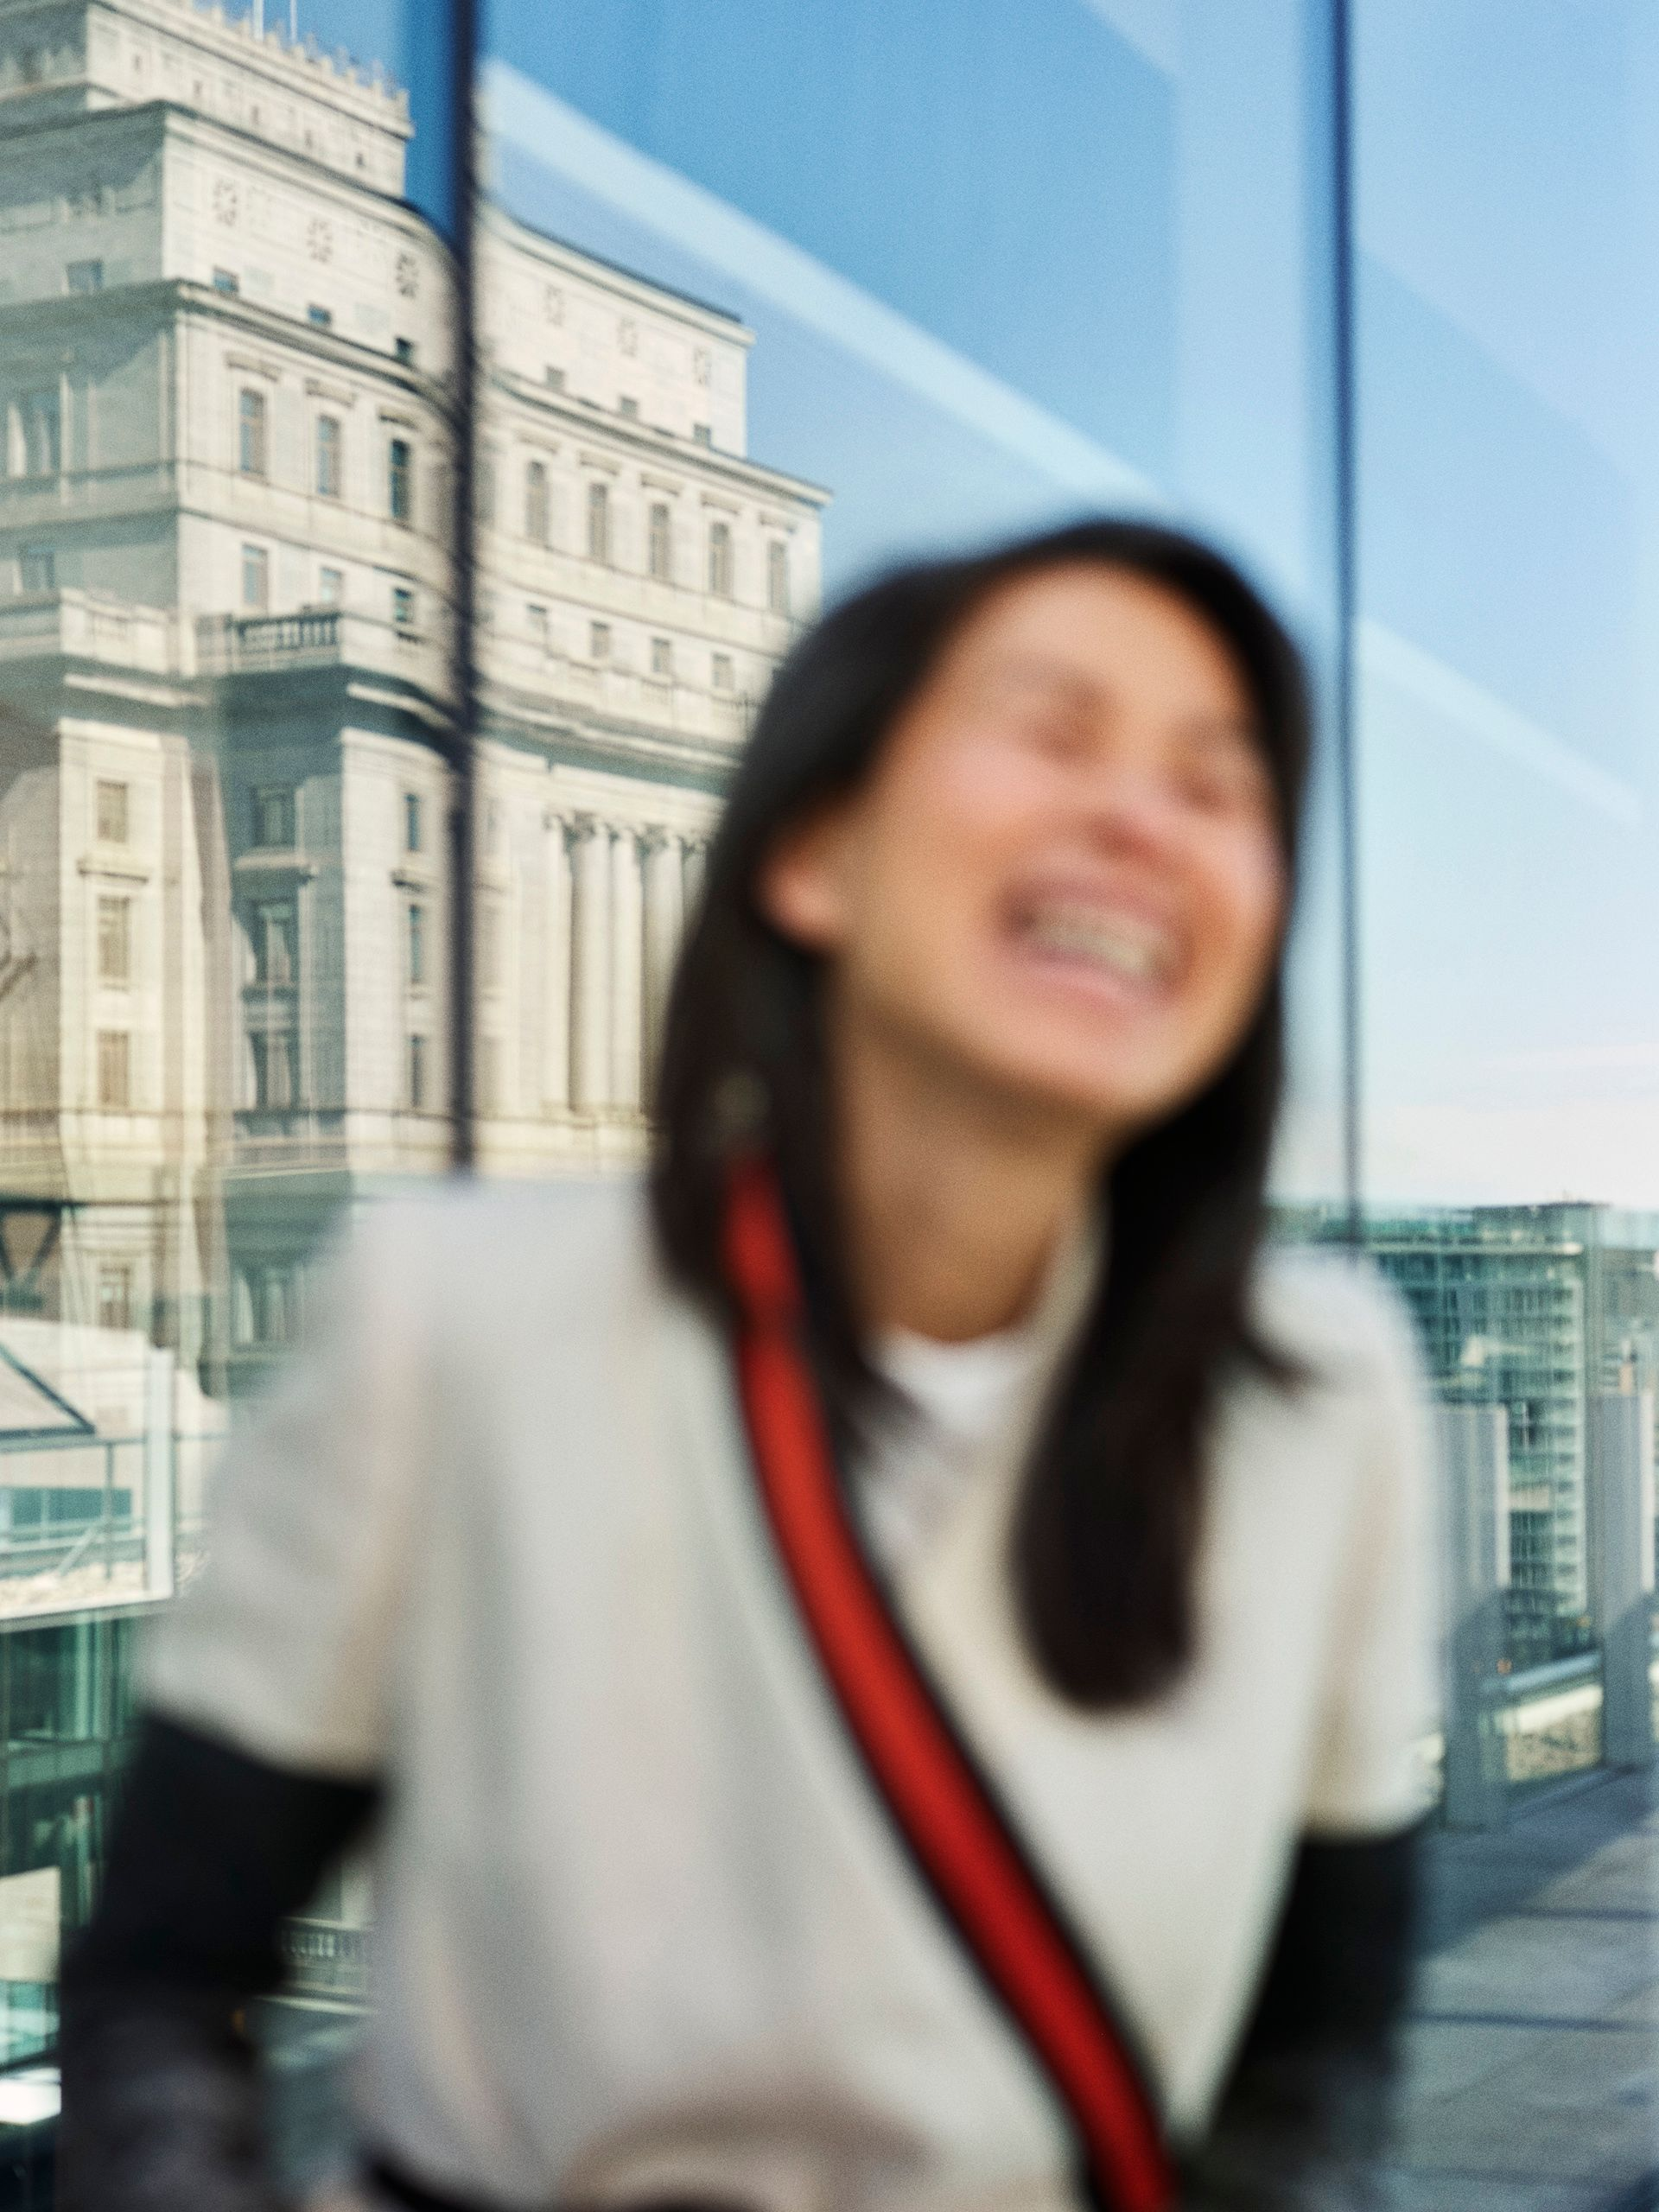 Out of focus portrait of author Kim Thuy laughing in front of glass tower buildings.